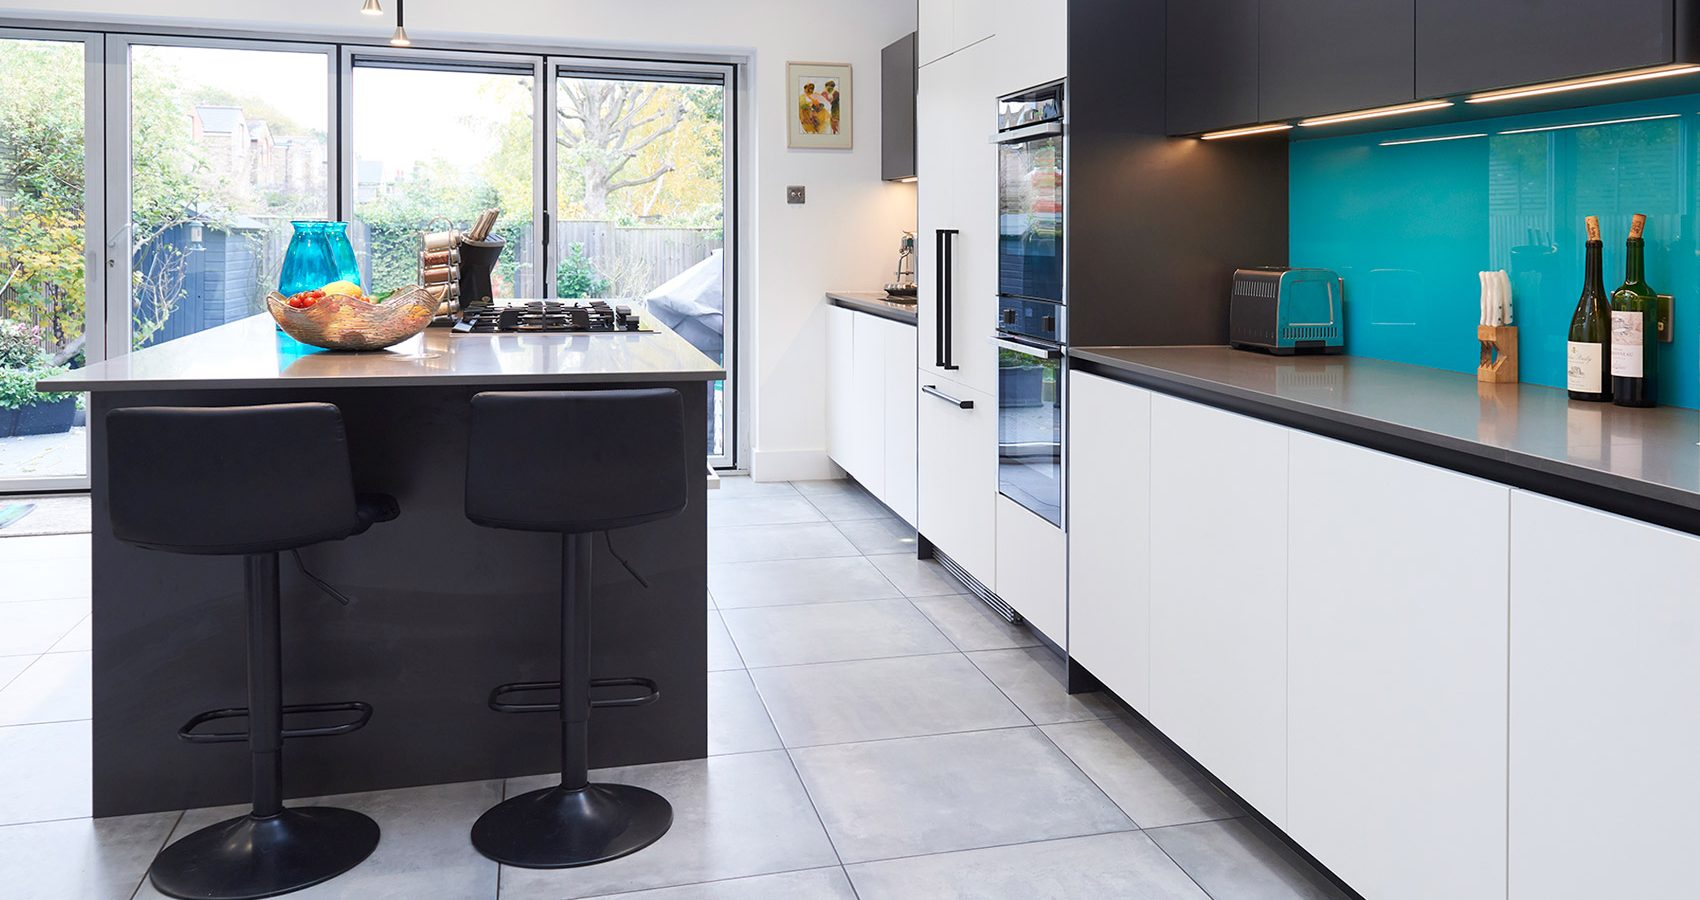 simple-interiors-london-projects-wandsworth-kitchen-02